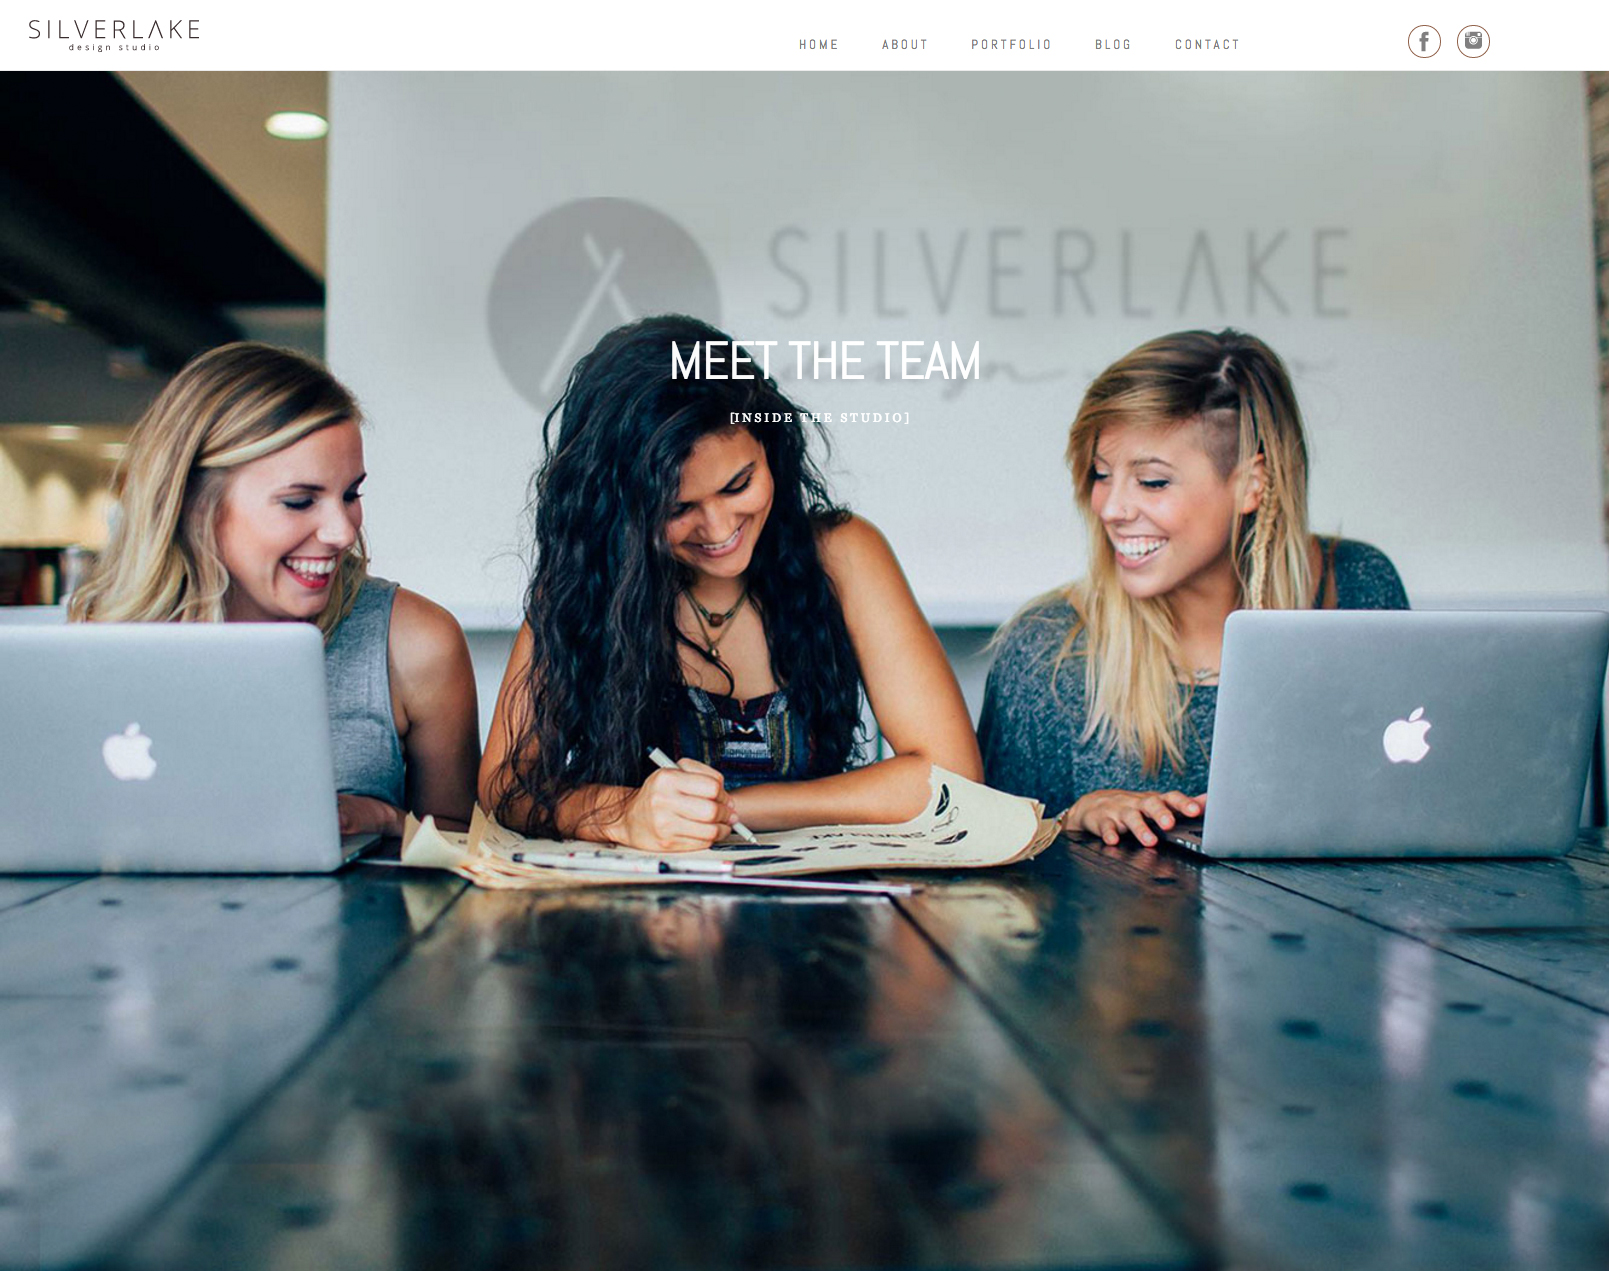 Here's a peak at Silverlake's finished site design.